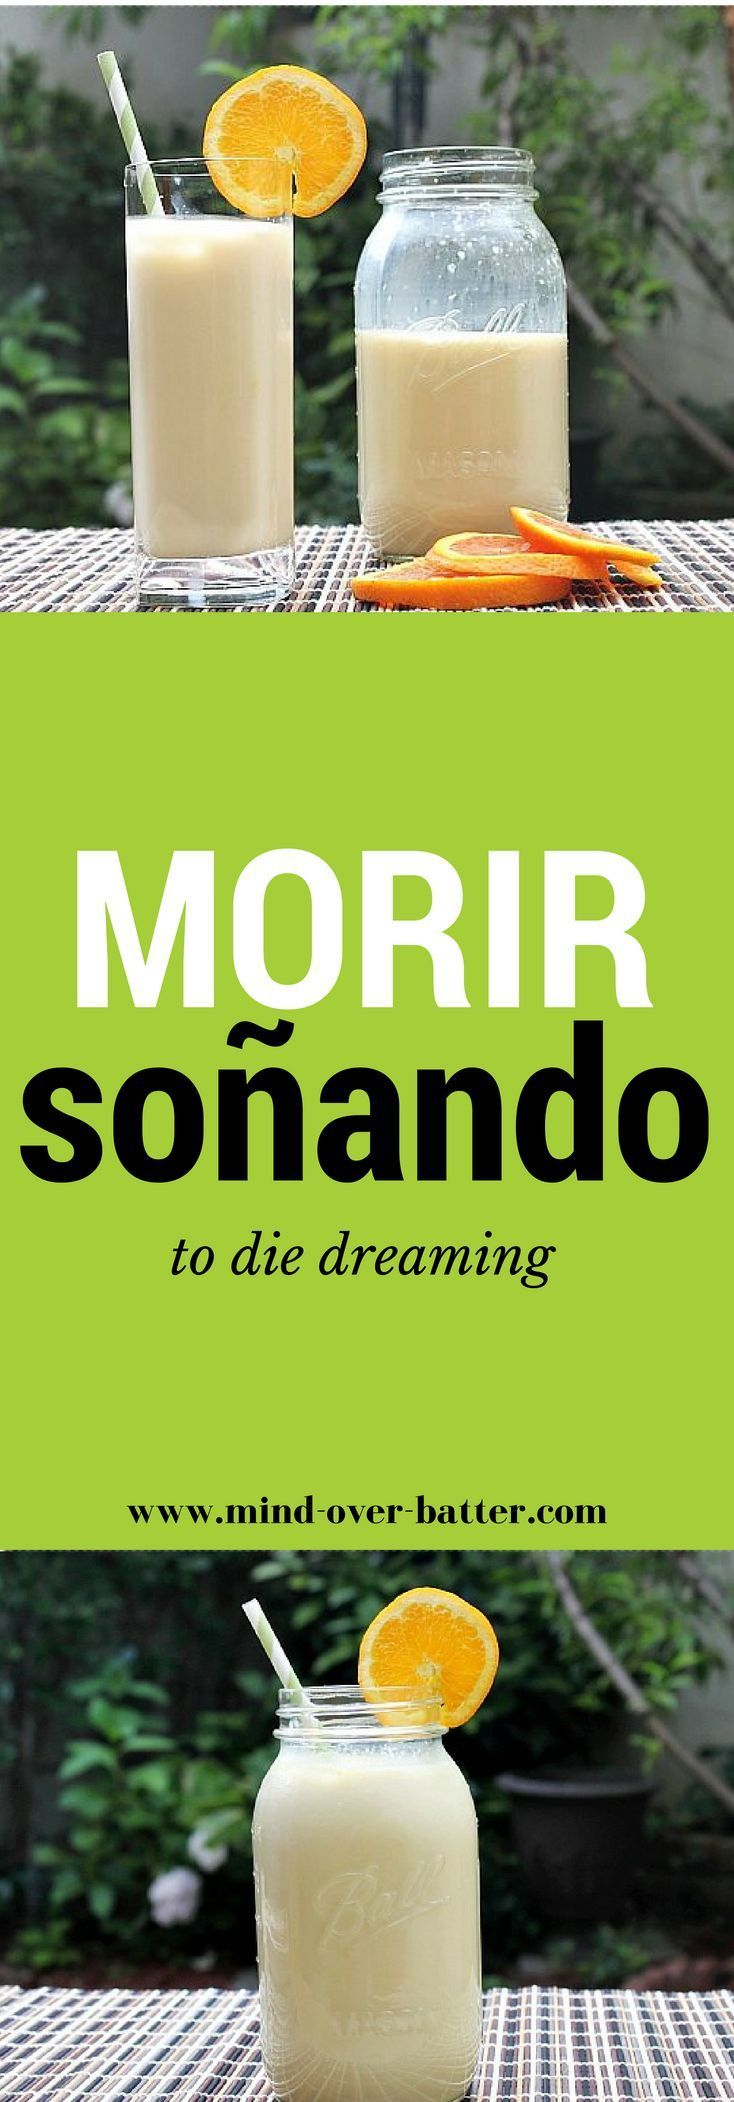 Morir Soando - The Latino Creamsicle! http://www.mind-over-batter.com